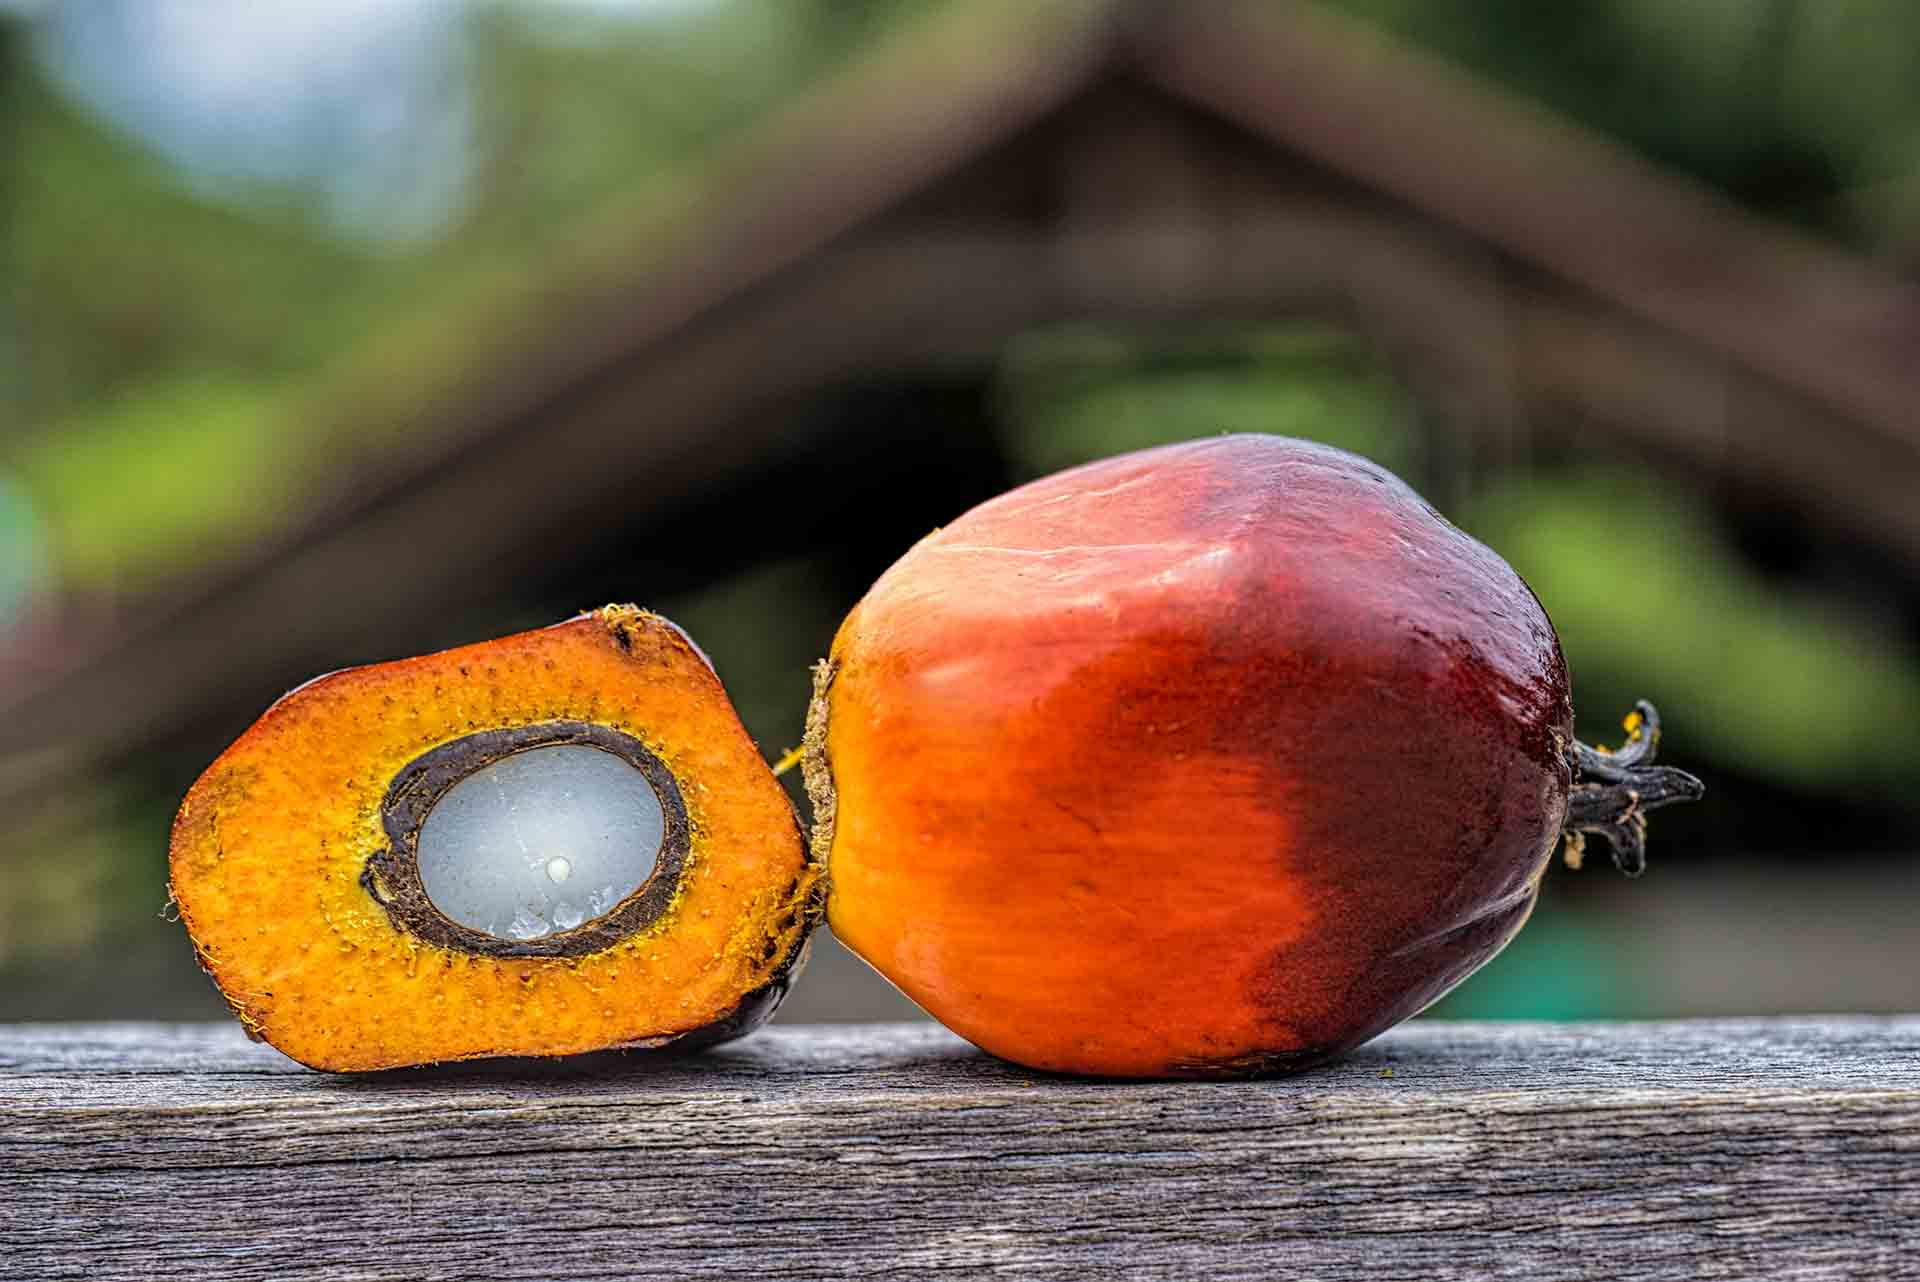 One full oil palm fruit and another cut in half sitting on a wood table.